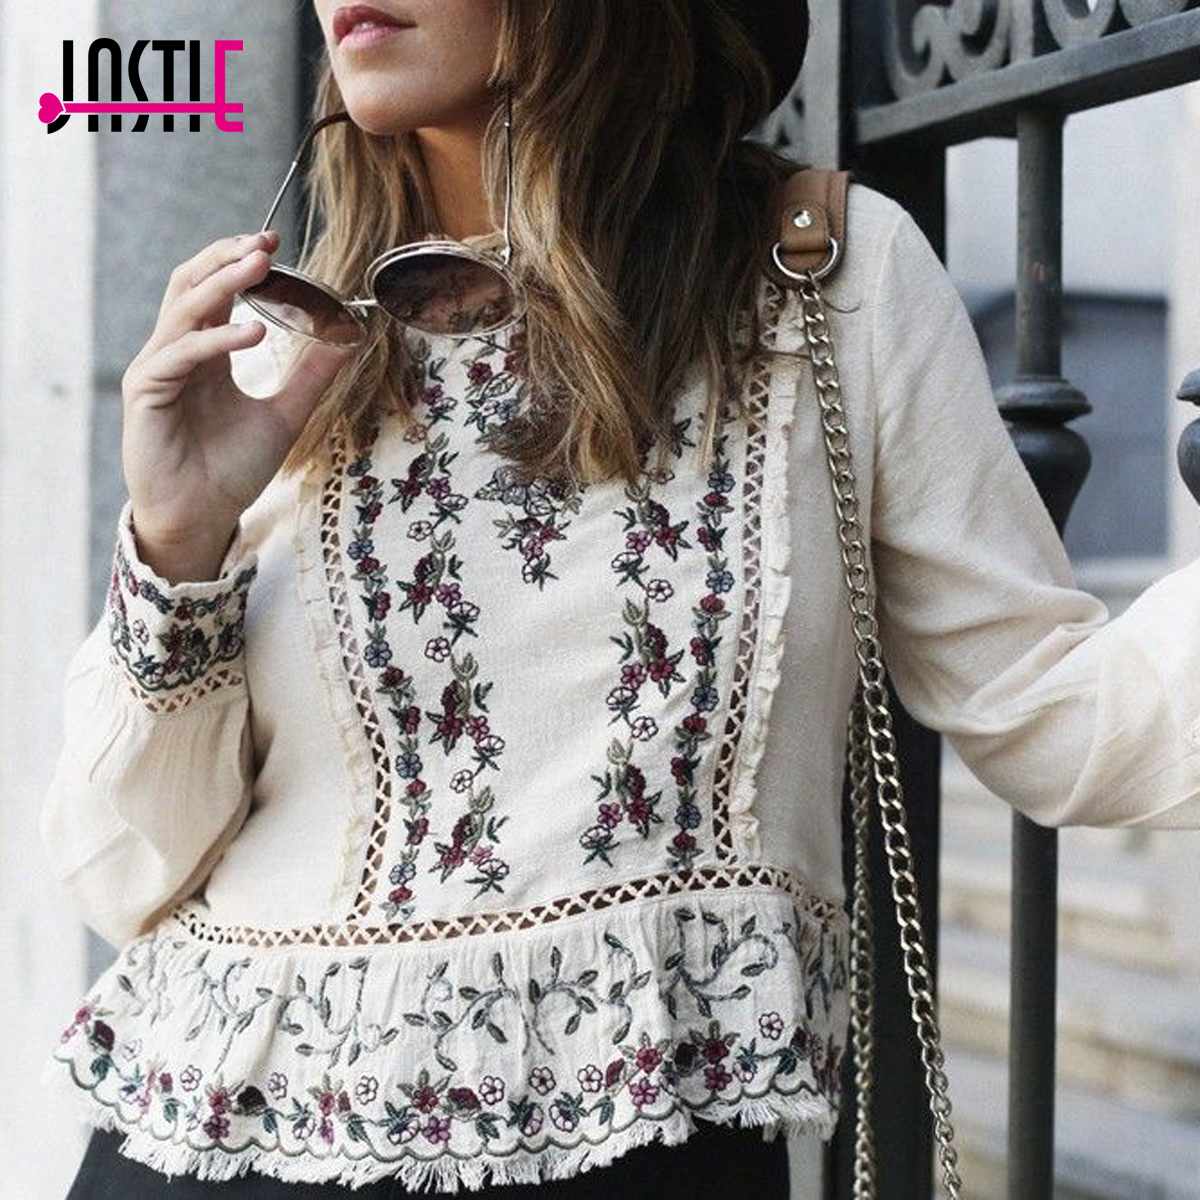 Jastie Floral Embroidered Women Blouse Ruffle Lace Chic O-Neck Long Sleeve Shirt Tops Unfinished Edges Hippie Boho Top Pullover